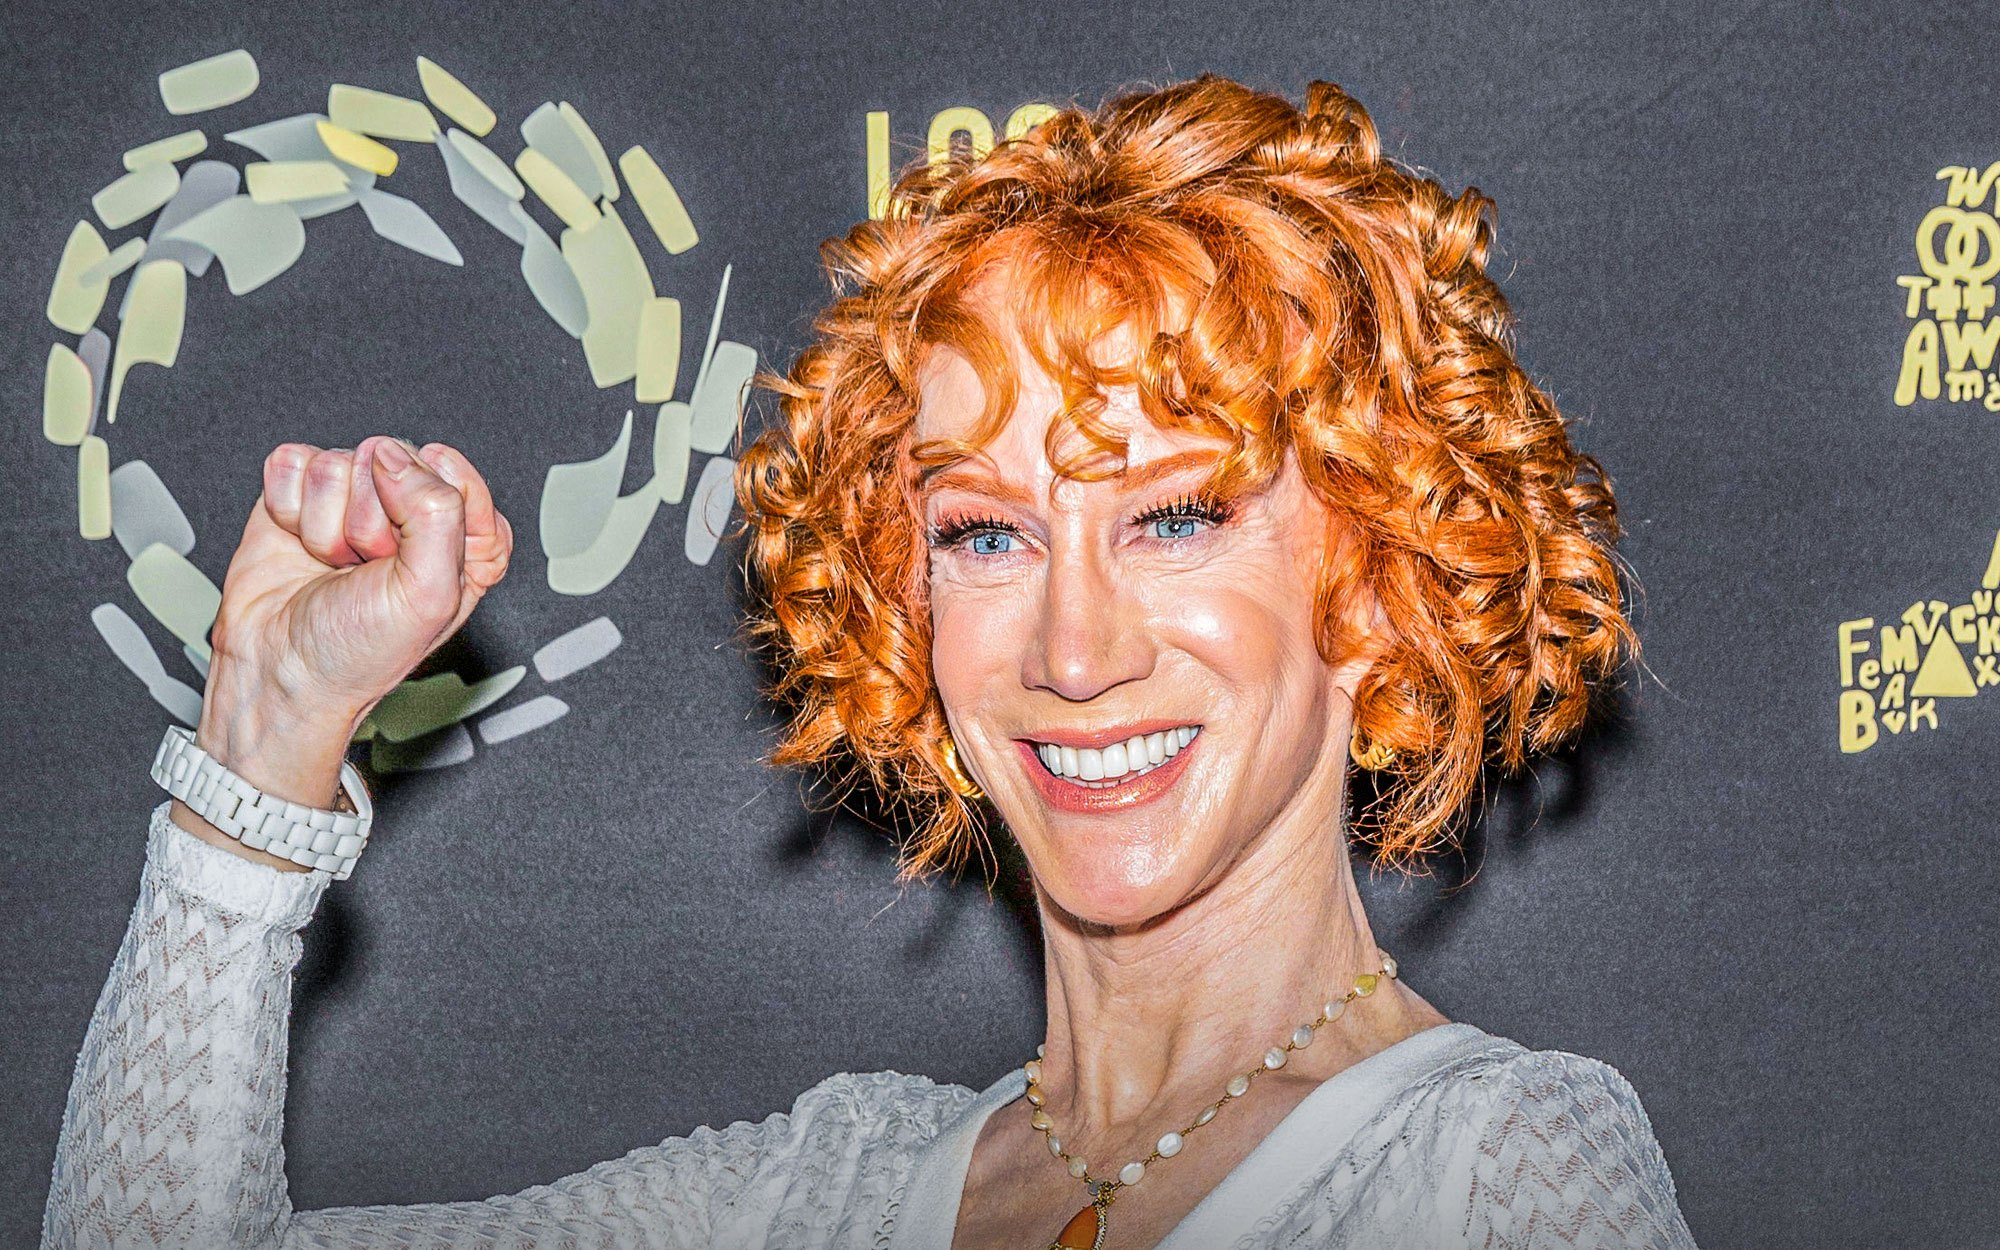 Kathy Griffin Says She Was Reduced to 'Begging' for Roles to Distance Herself from Trump Controversy